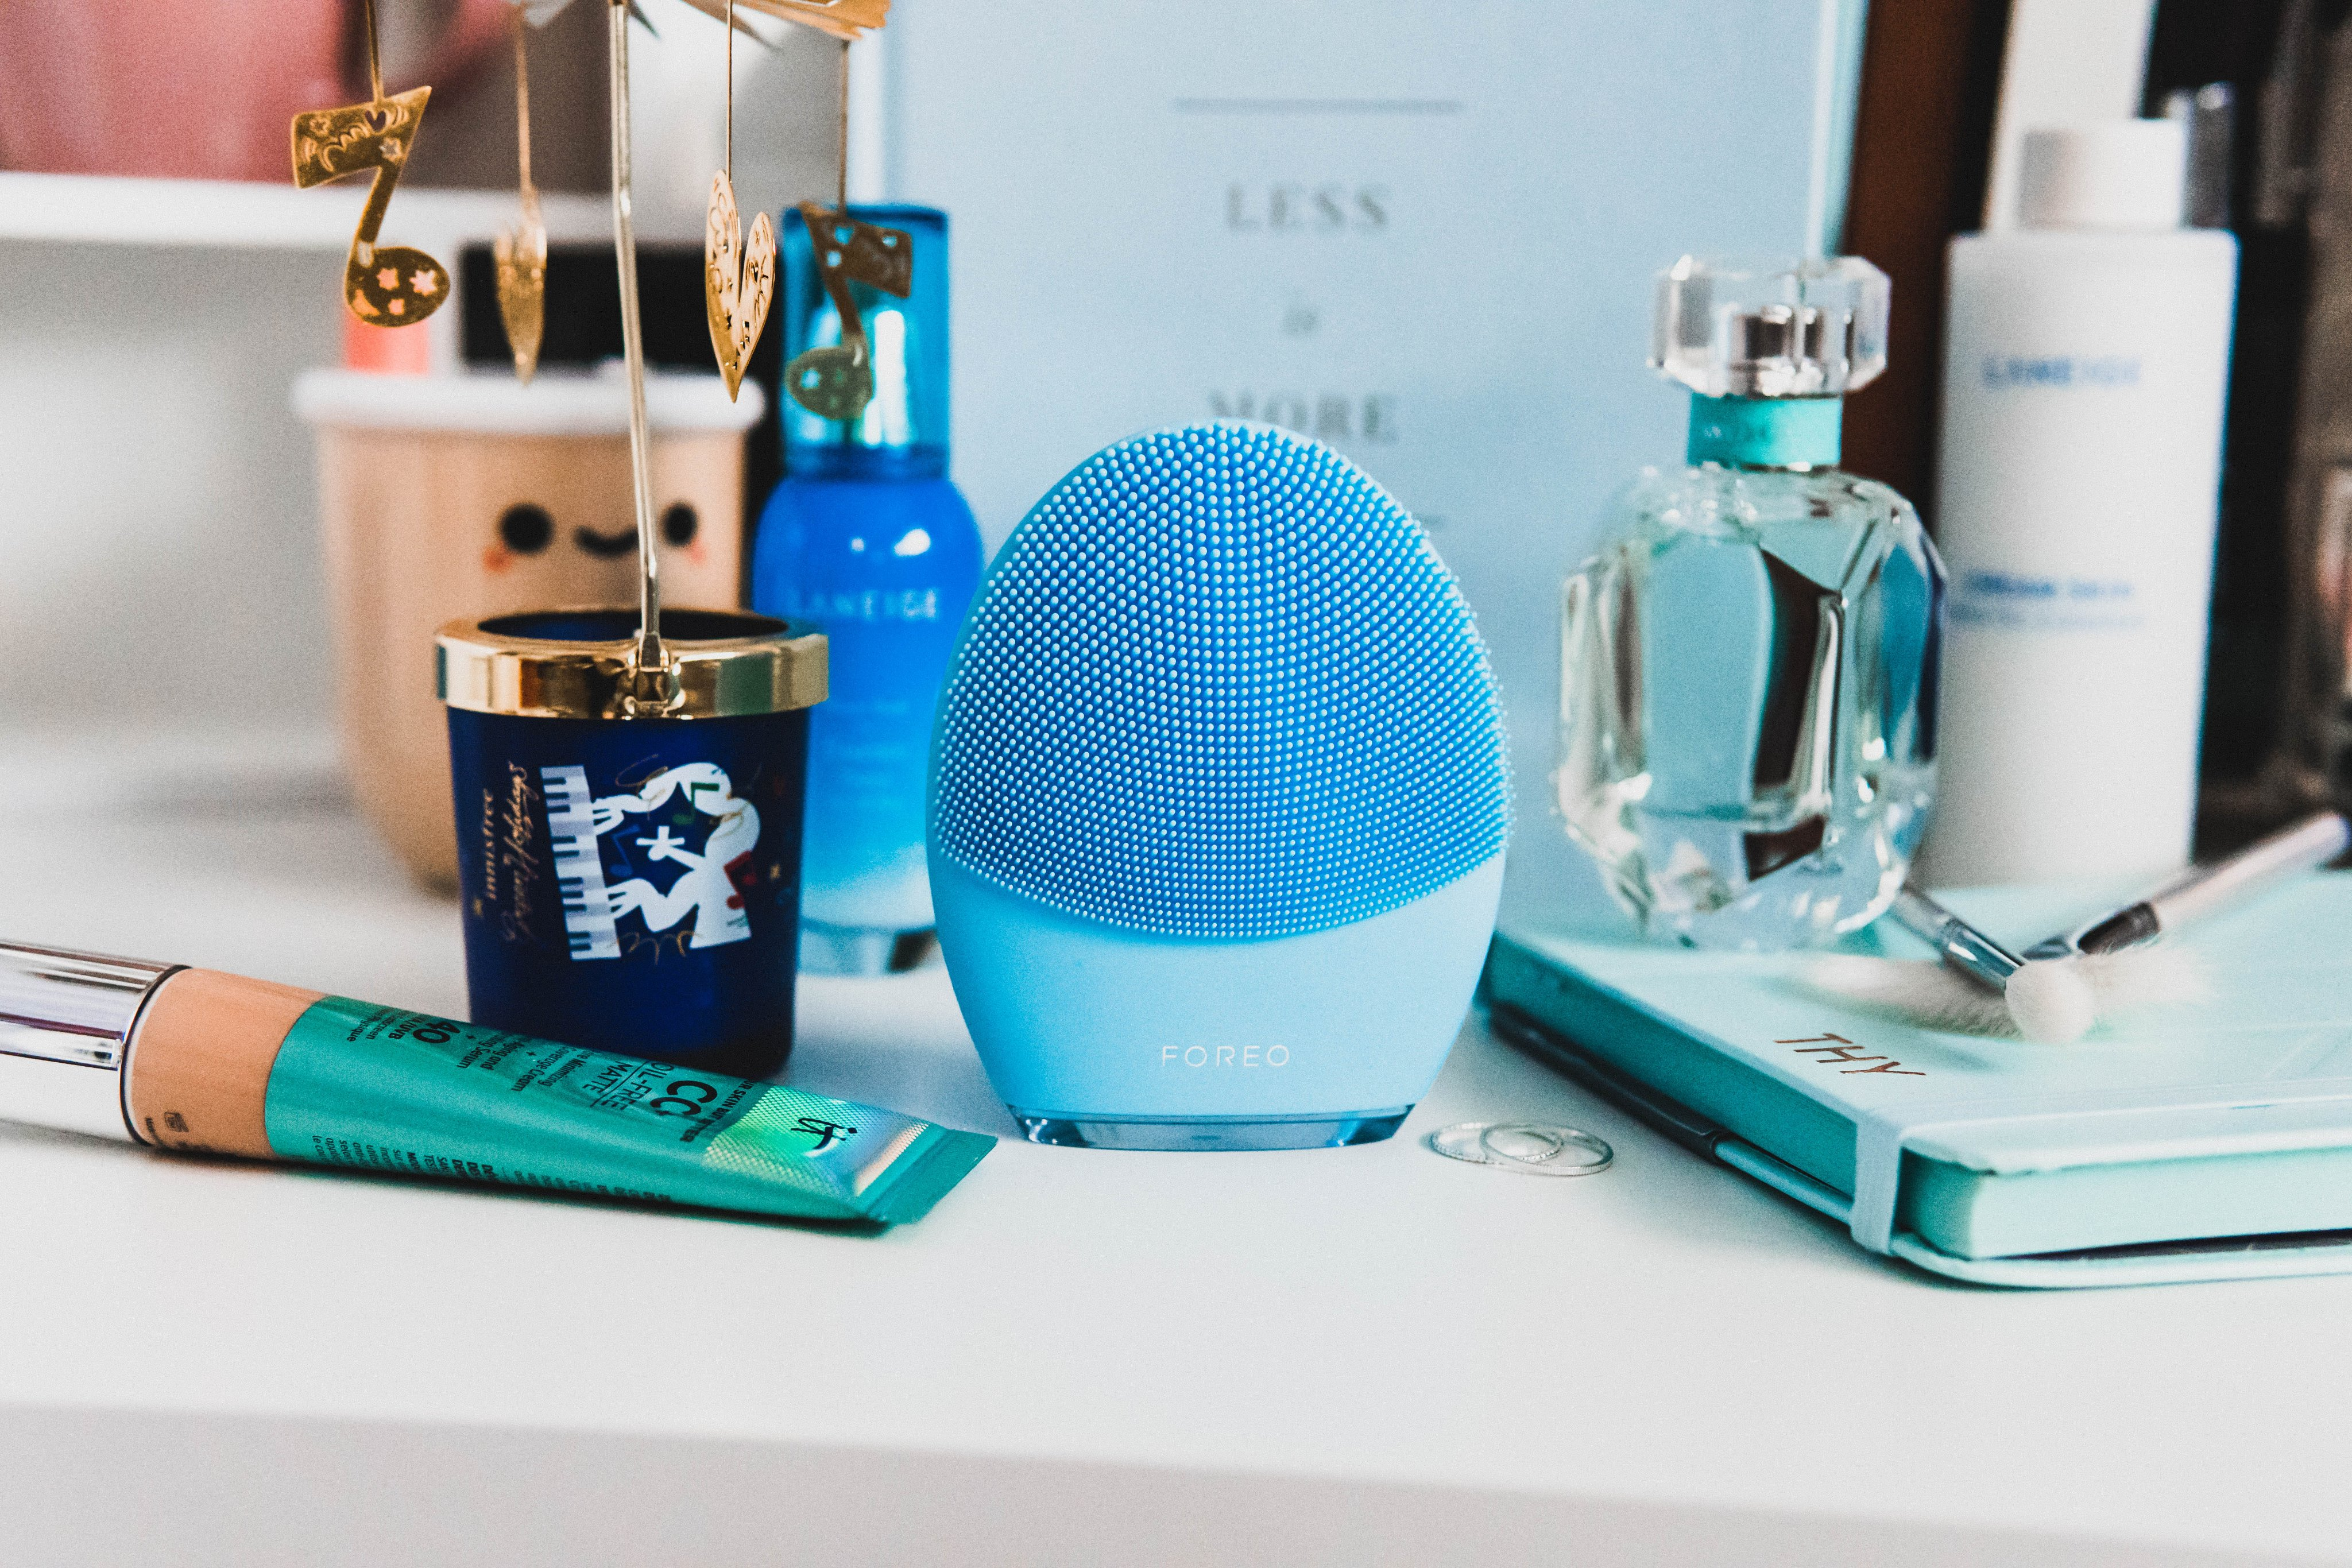 FOREO Cyber Monday 2020 5 2 1 - FOREO Cyber Monday 2020